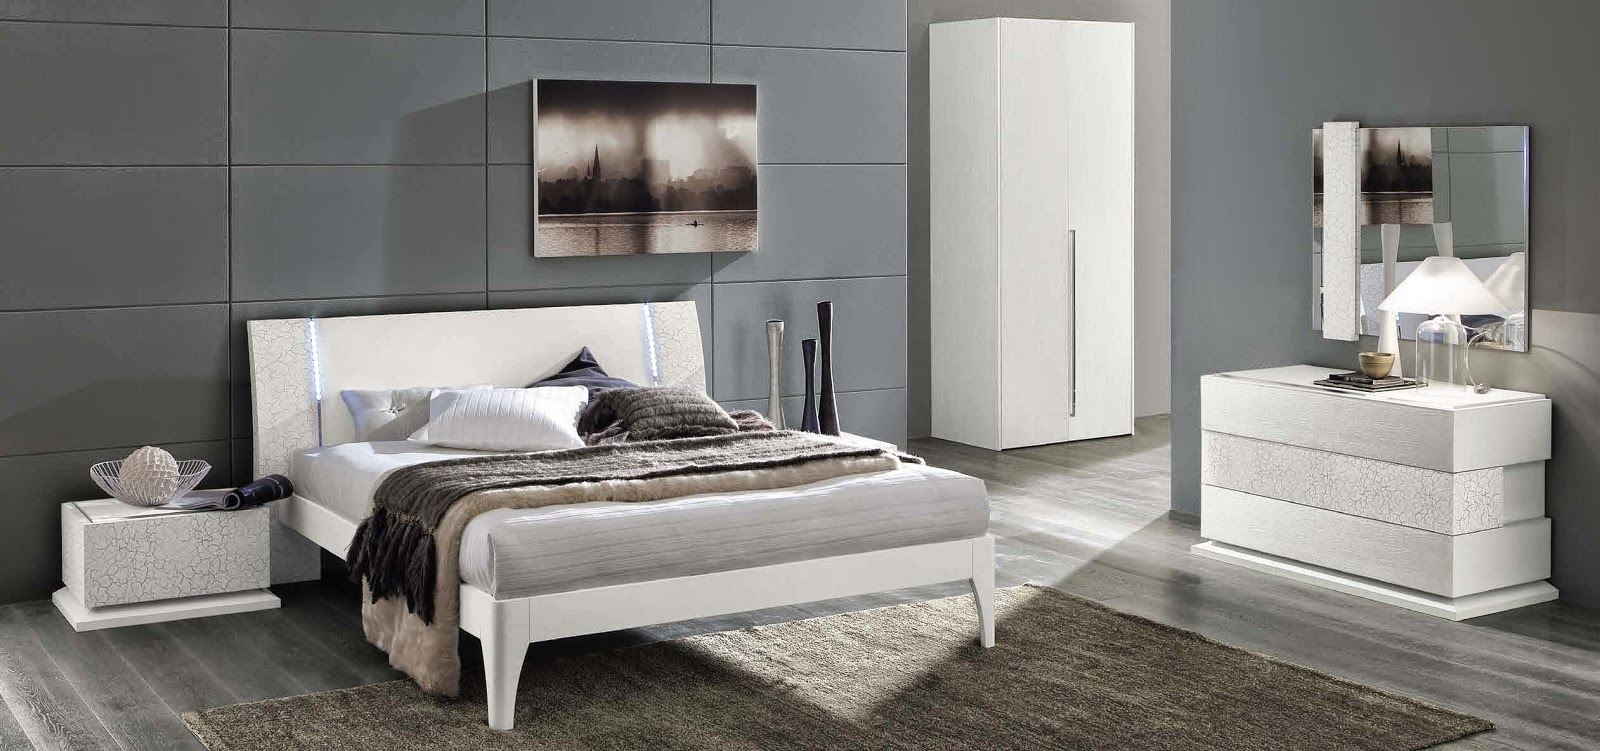 id e de peinture pour chambre id es d co moderne. Black Bedroom Furniture Sets. Home Design Ideas